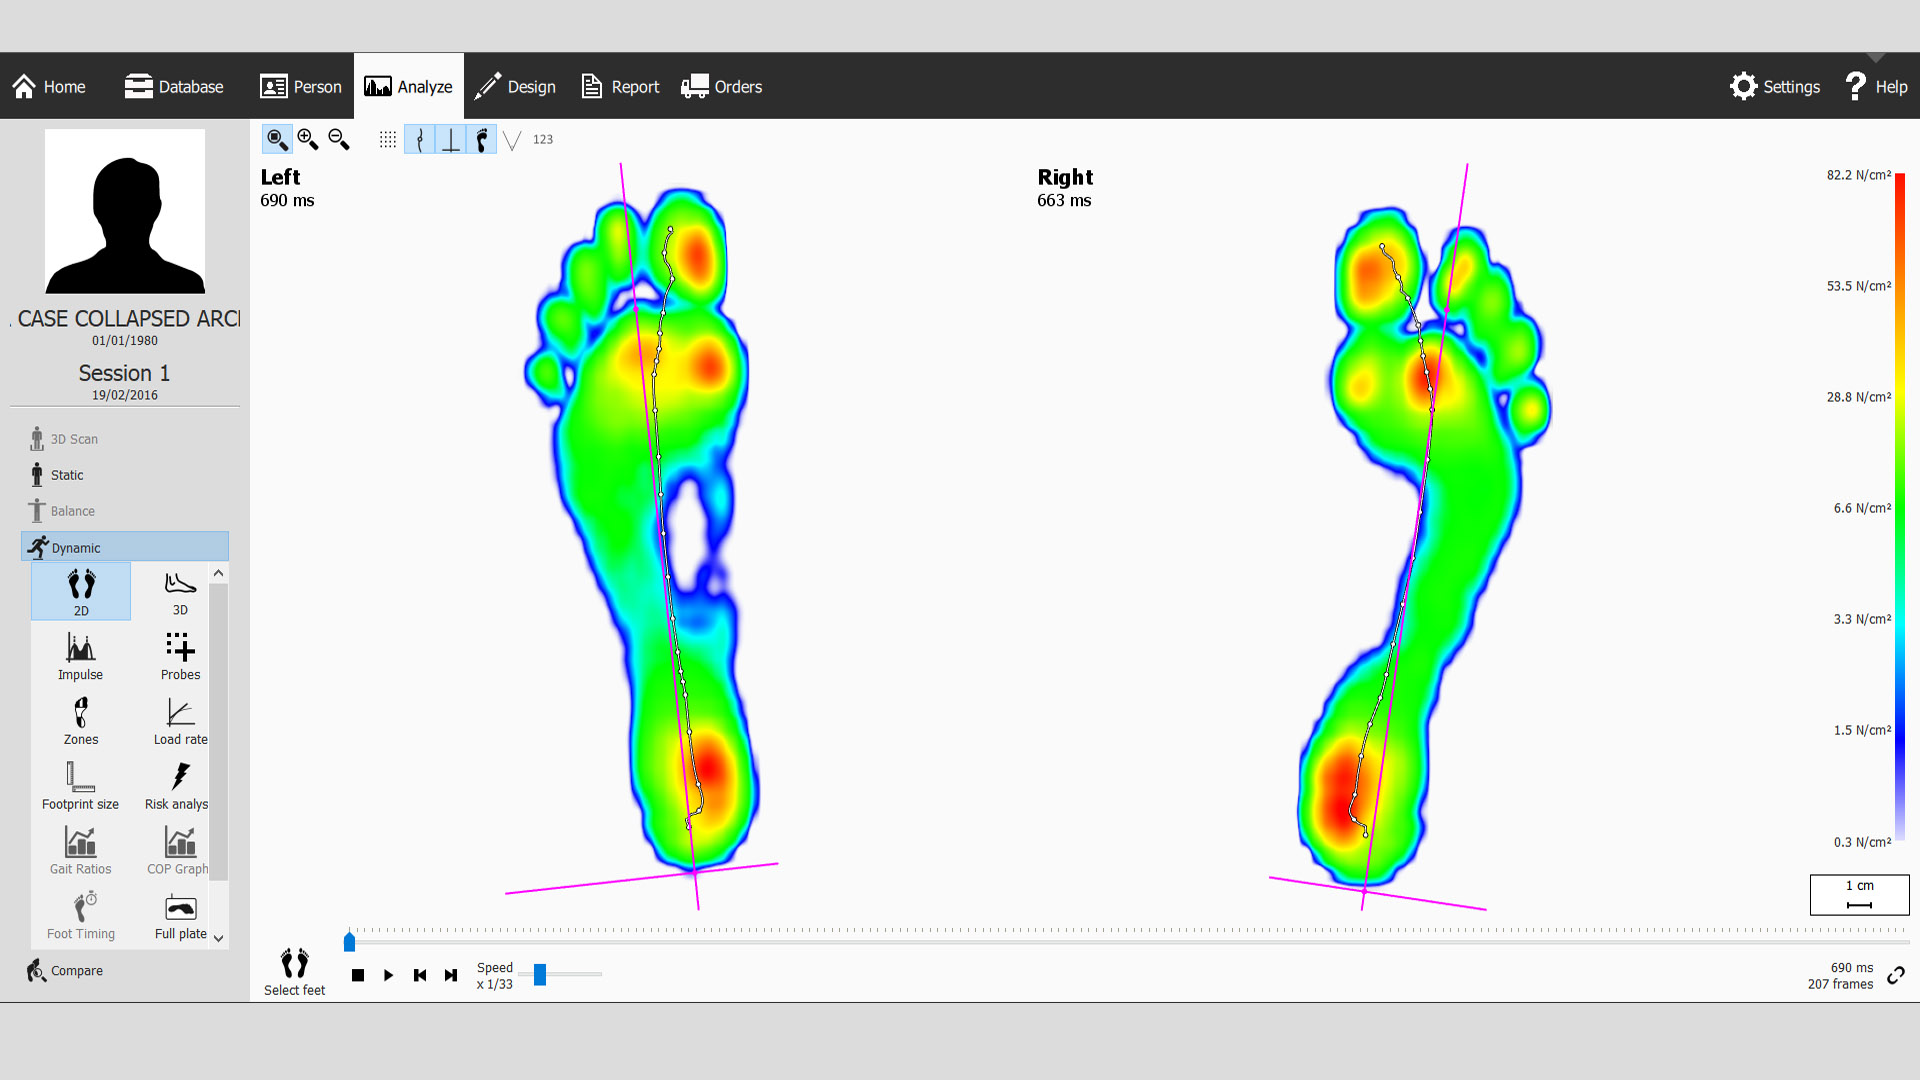 Gait Analysis for Collapsed arches